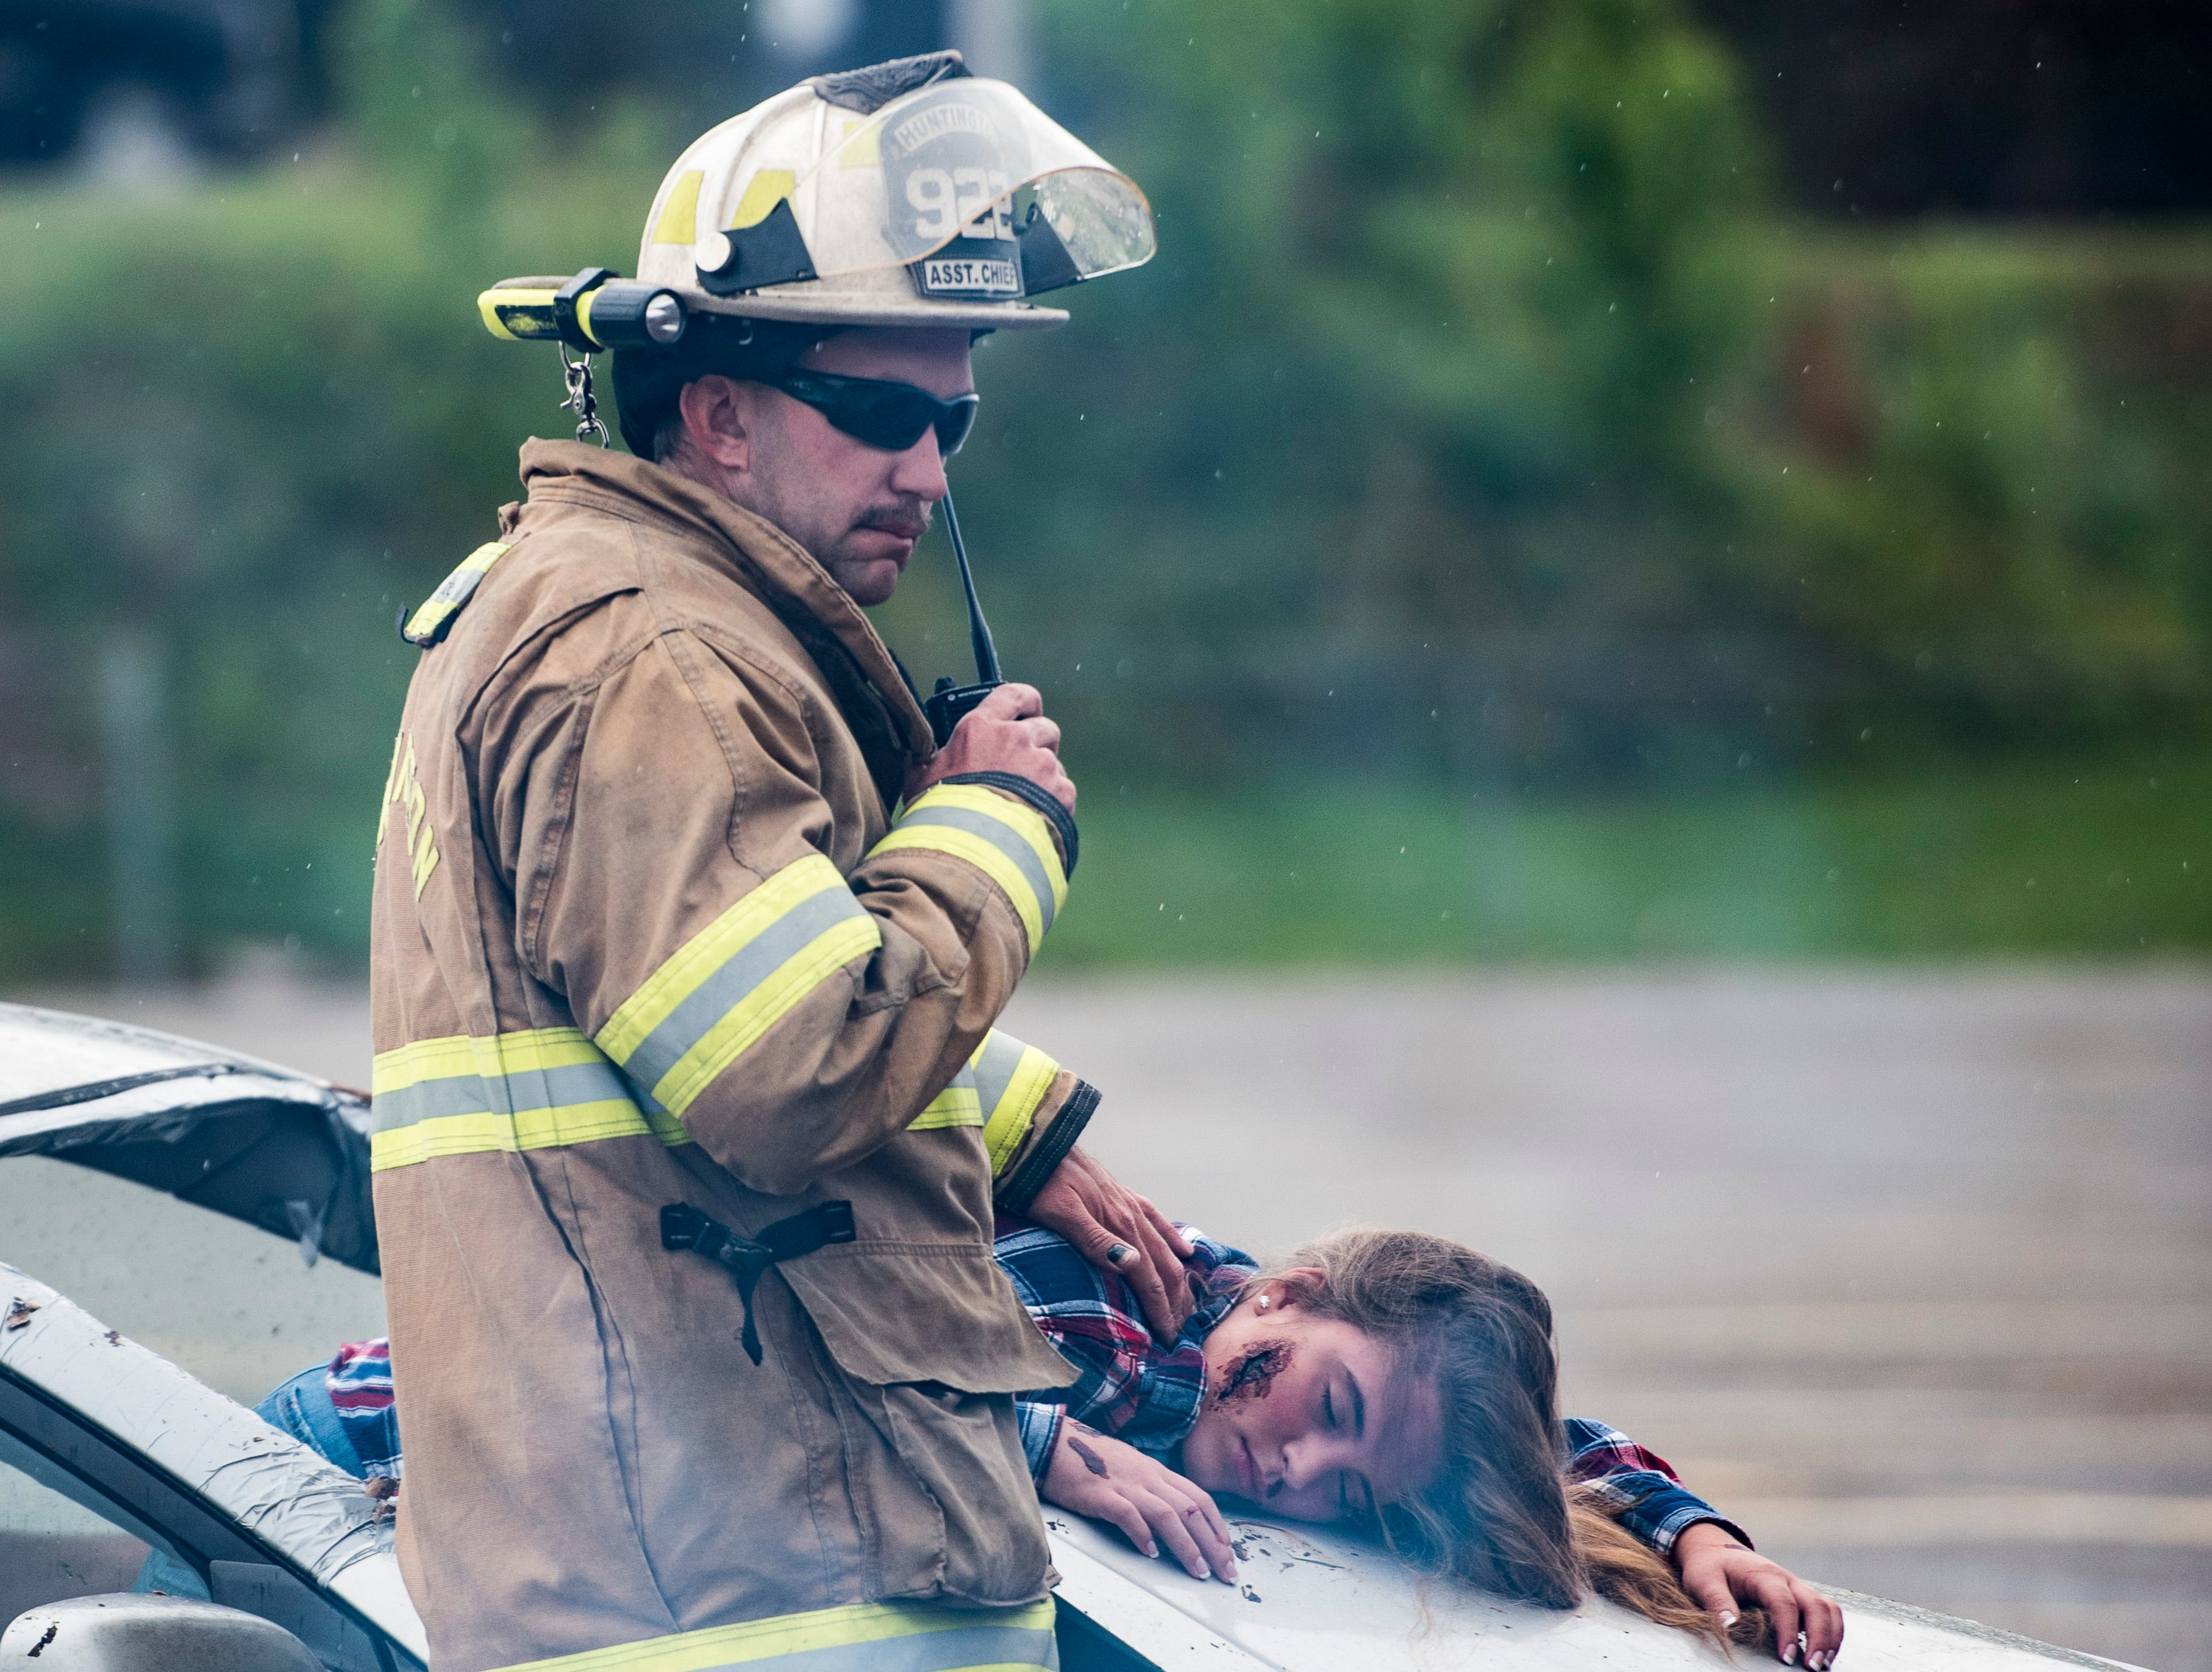 A Huntington firefighter calls in a dead body during a vehicular mock crash in Huntington Township on Thursday, April 25, 2019.